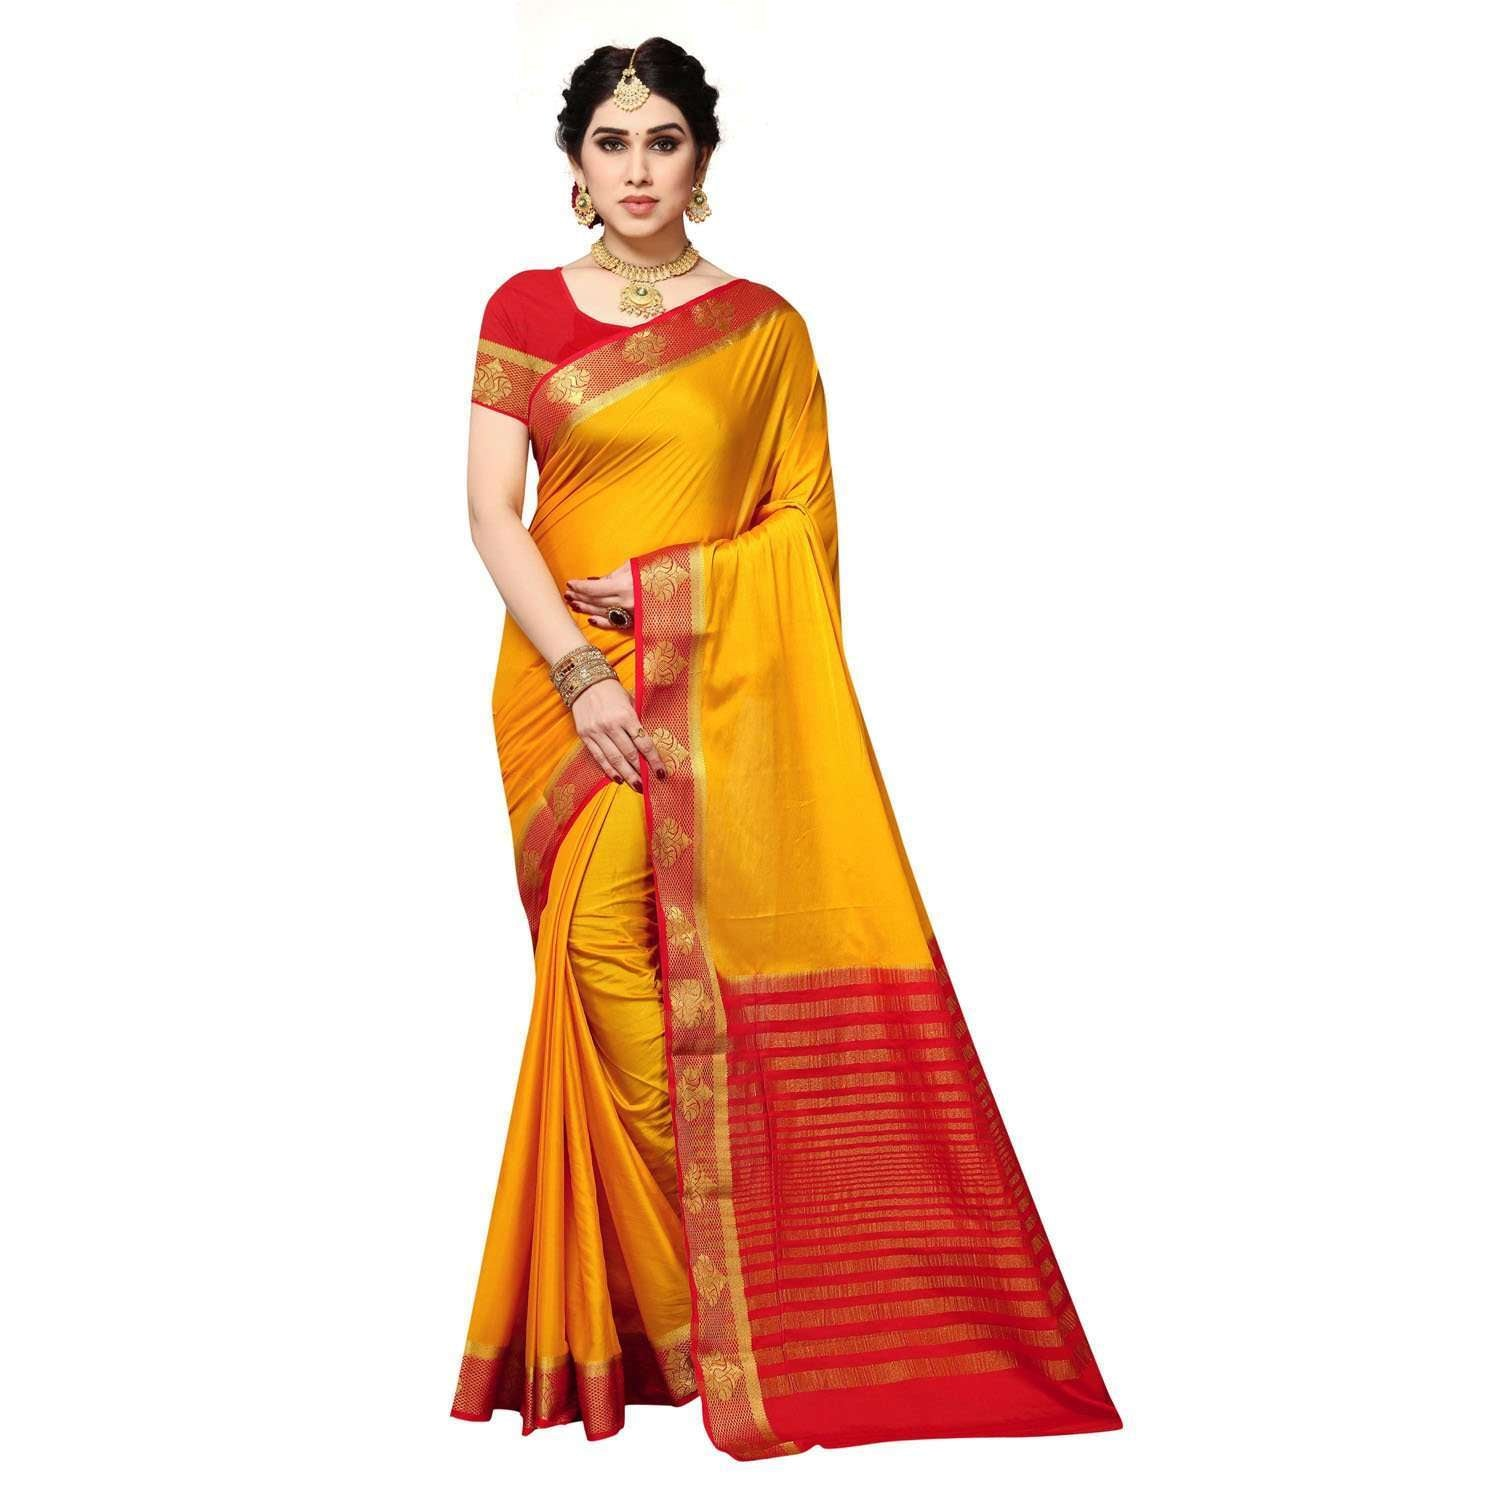 Arars Women's Kanchipuram Kanjivaram Pattu Style Crepe Plain Silk Saree With Blouse (373 MUSTARD )